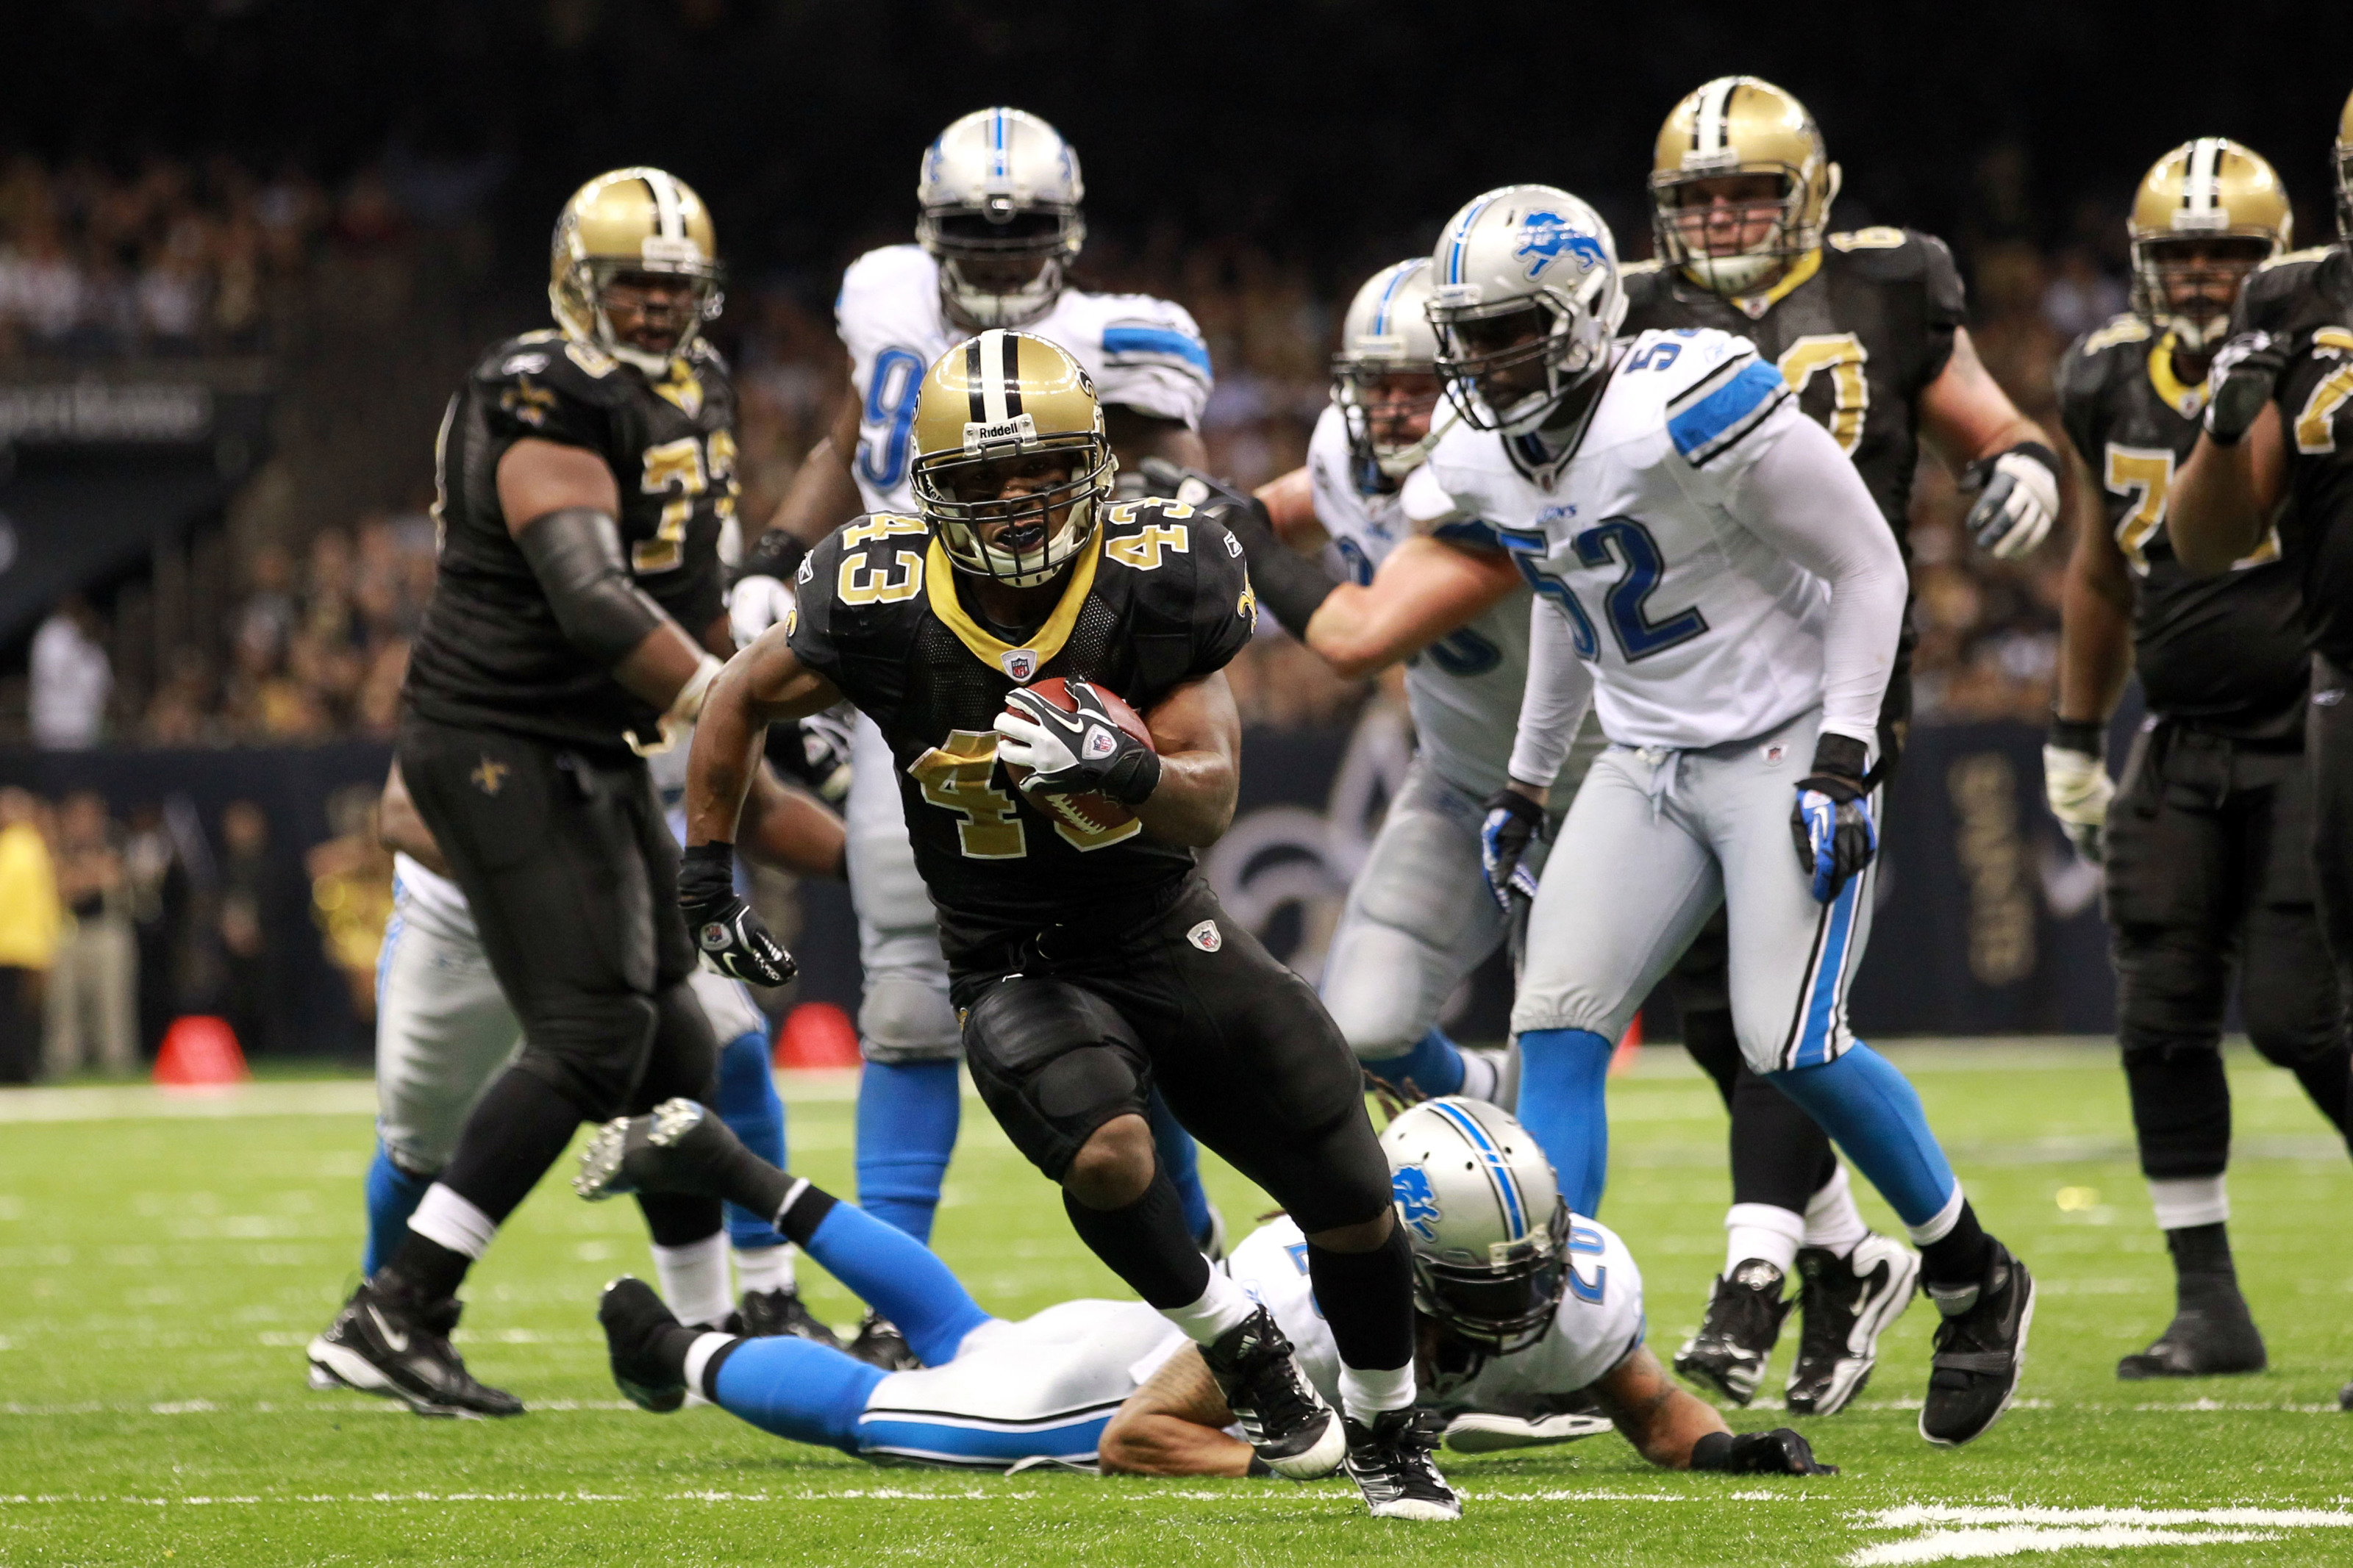 New Orleans Saints: Four players make NFL 2010s All-Decade Team